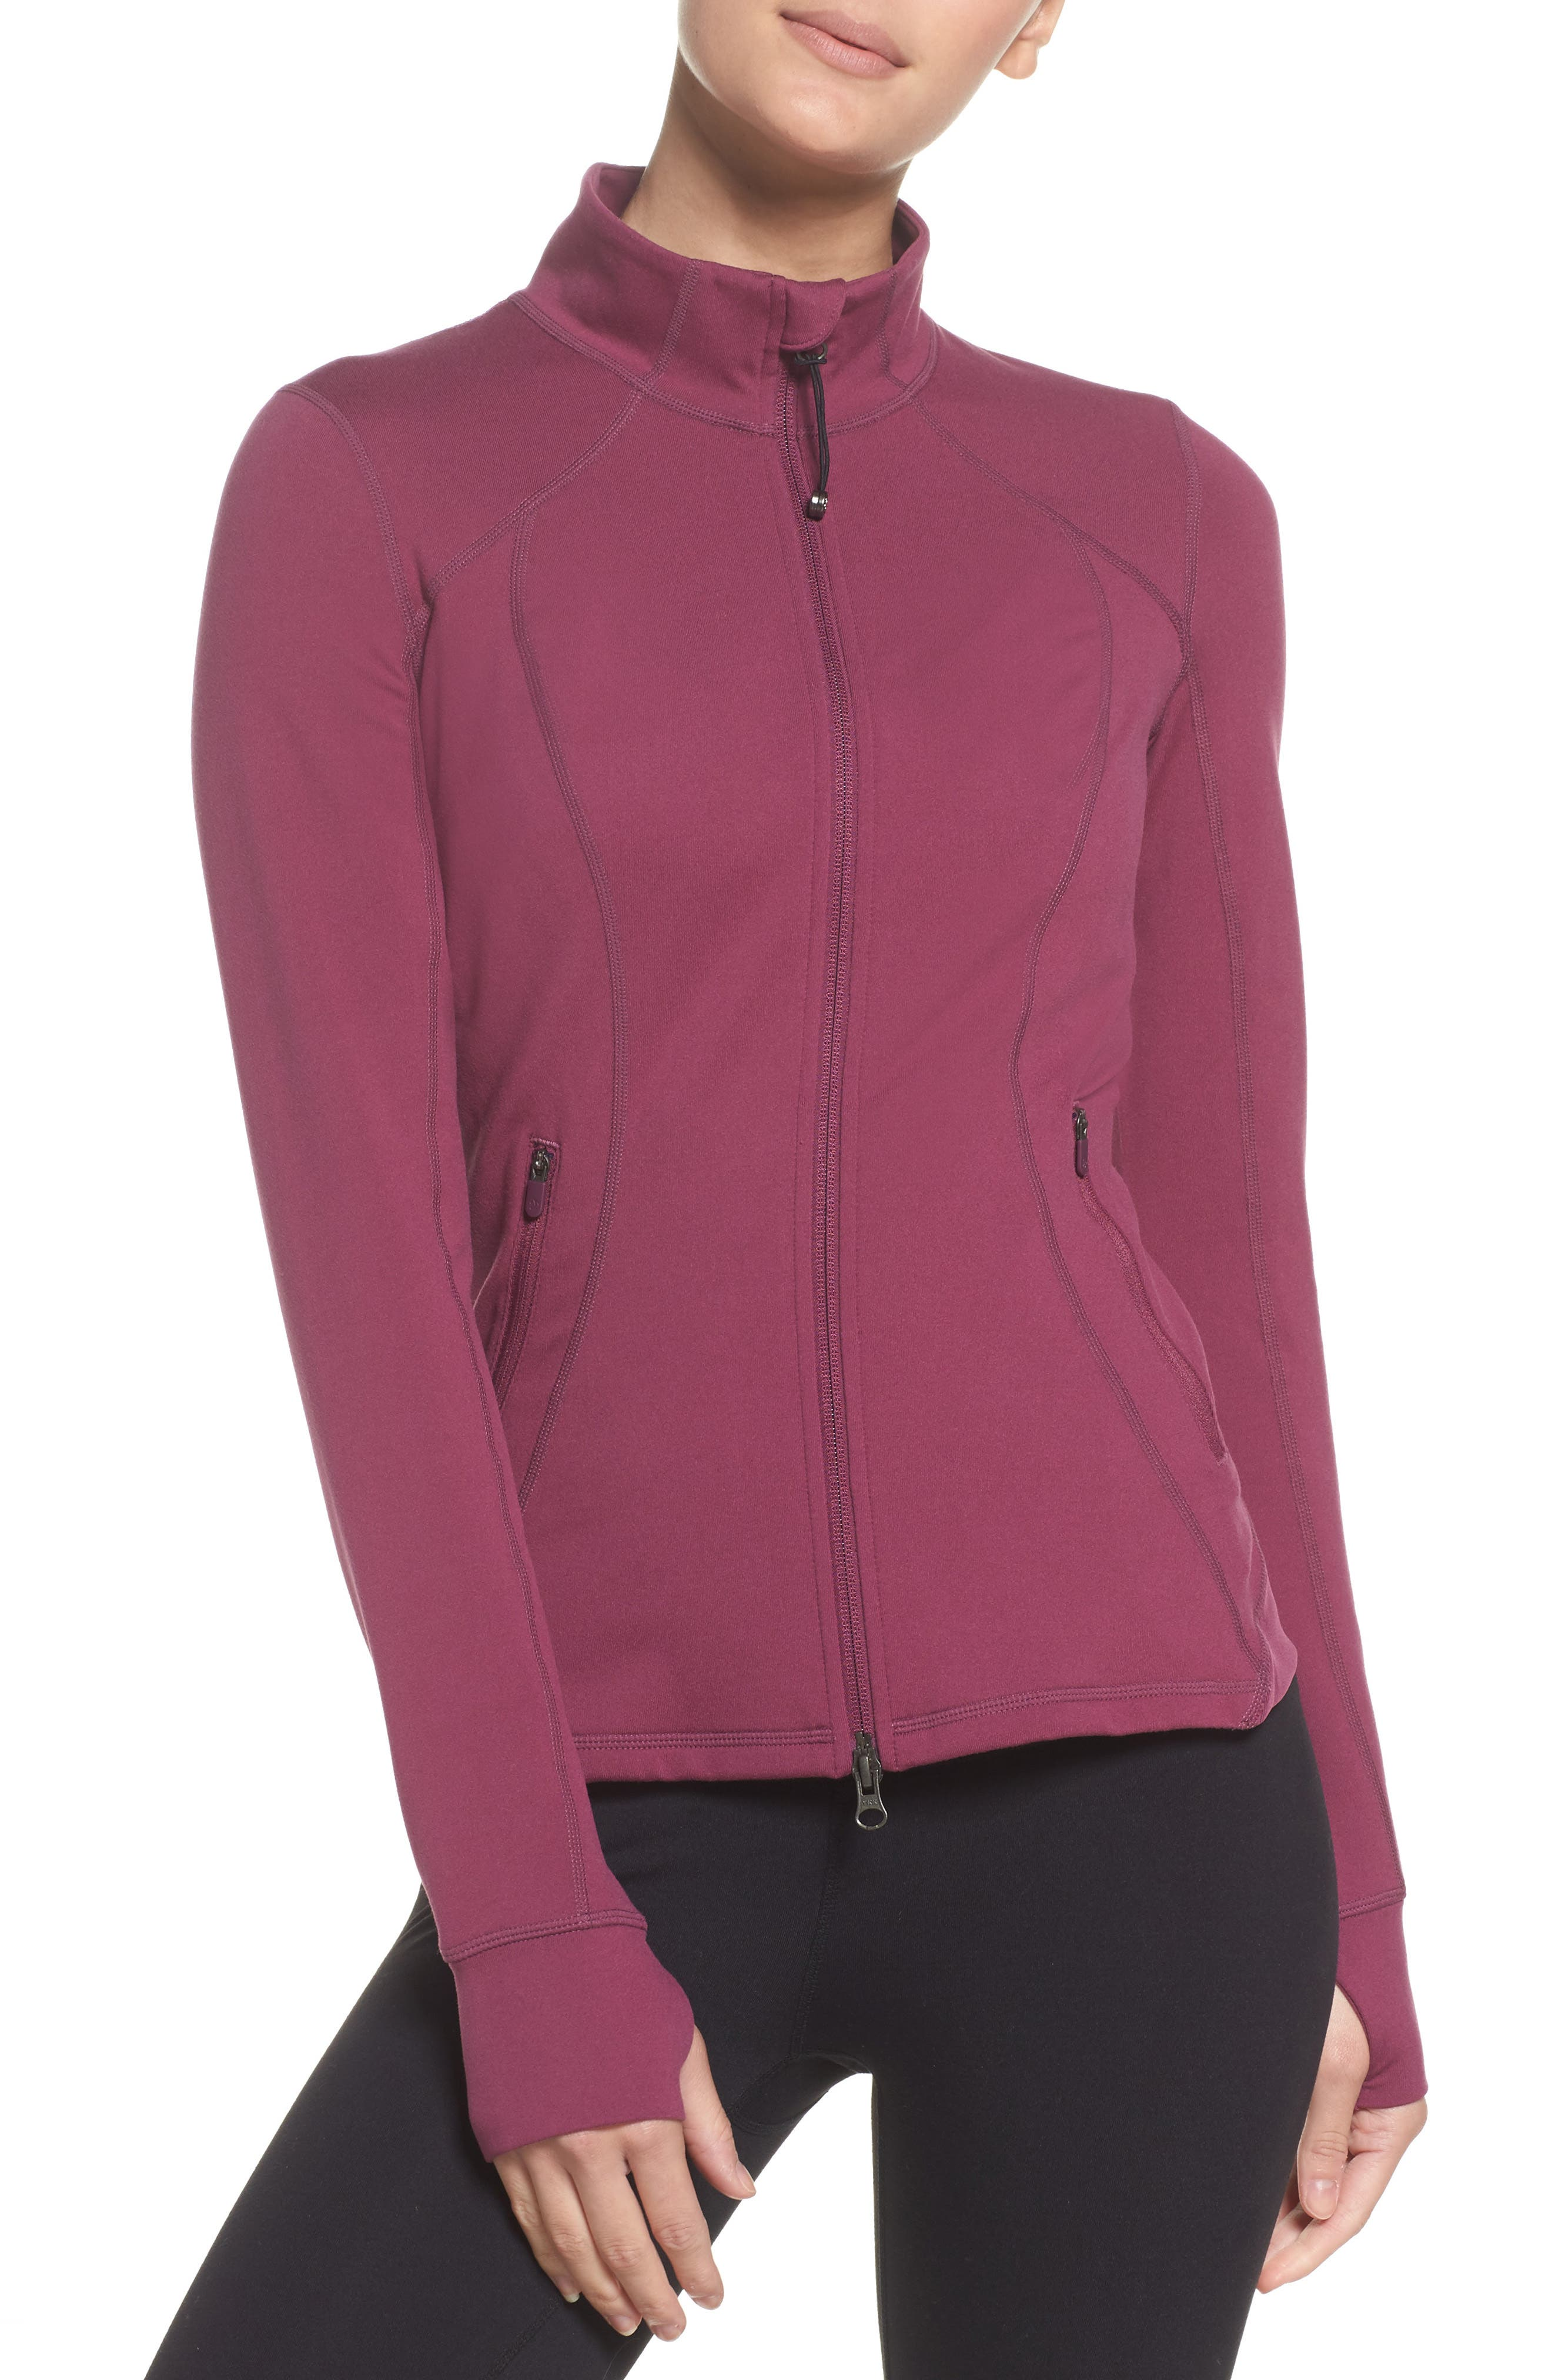 Presence Training Jacket,                             Main thumbnail 1, color,                             Purple Cabbage